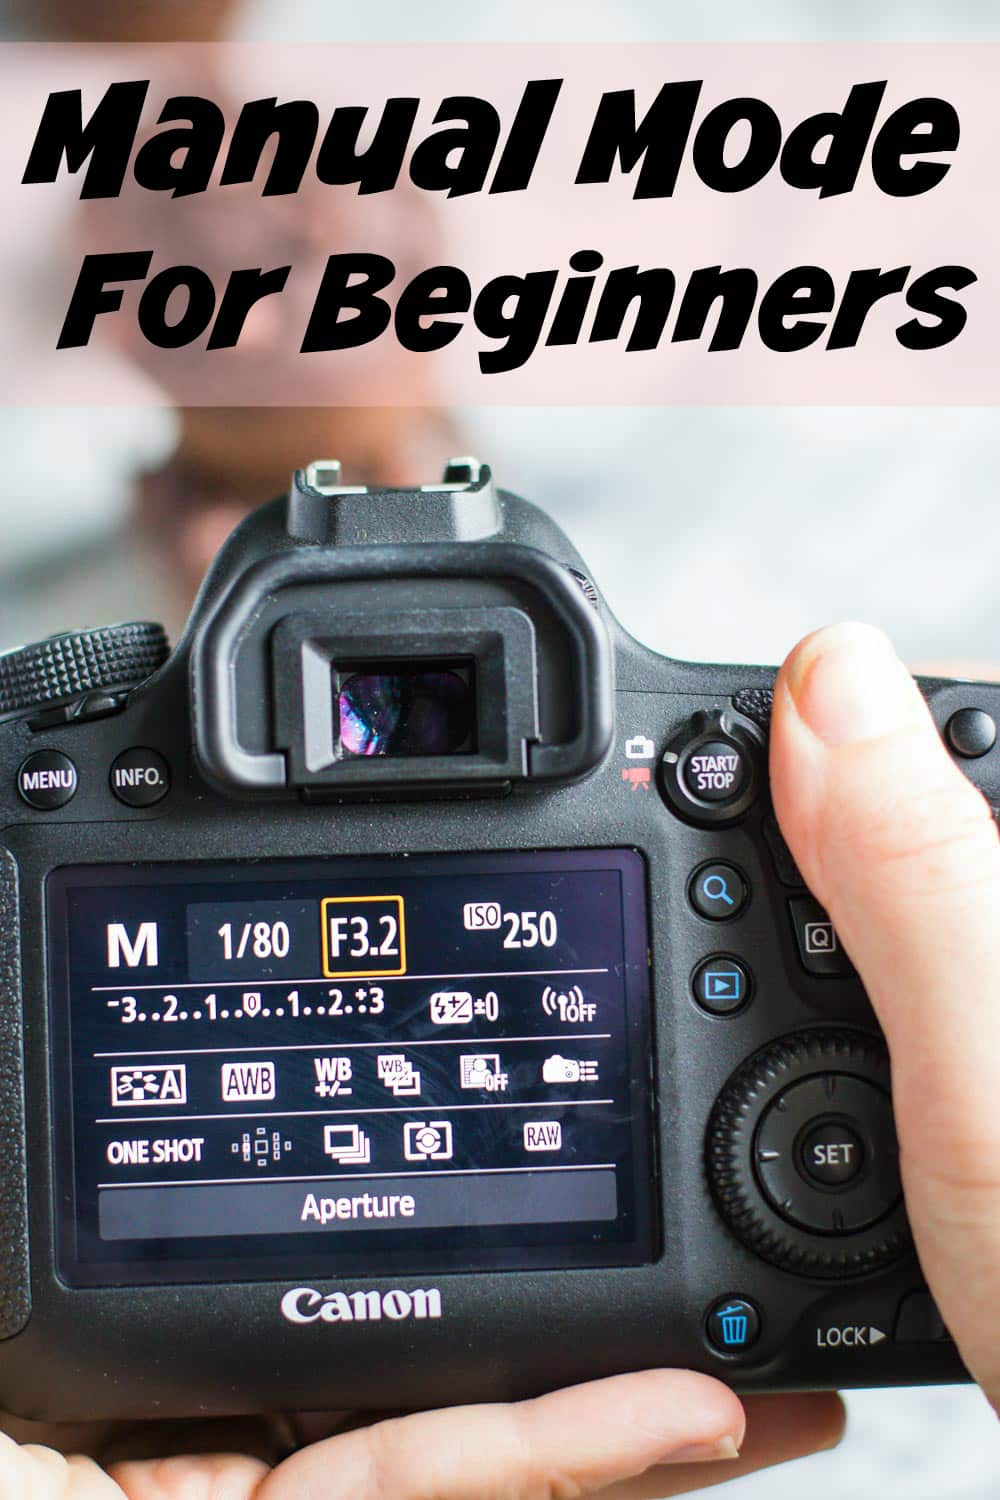 Camera Beginners Dslr Camera Guide dslr manual mode for beginners b britnell beginners